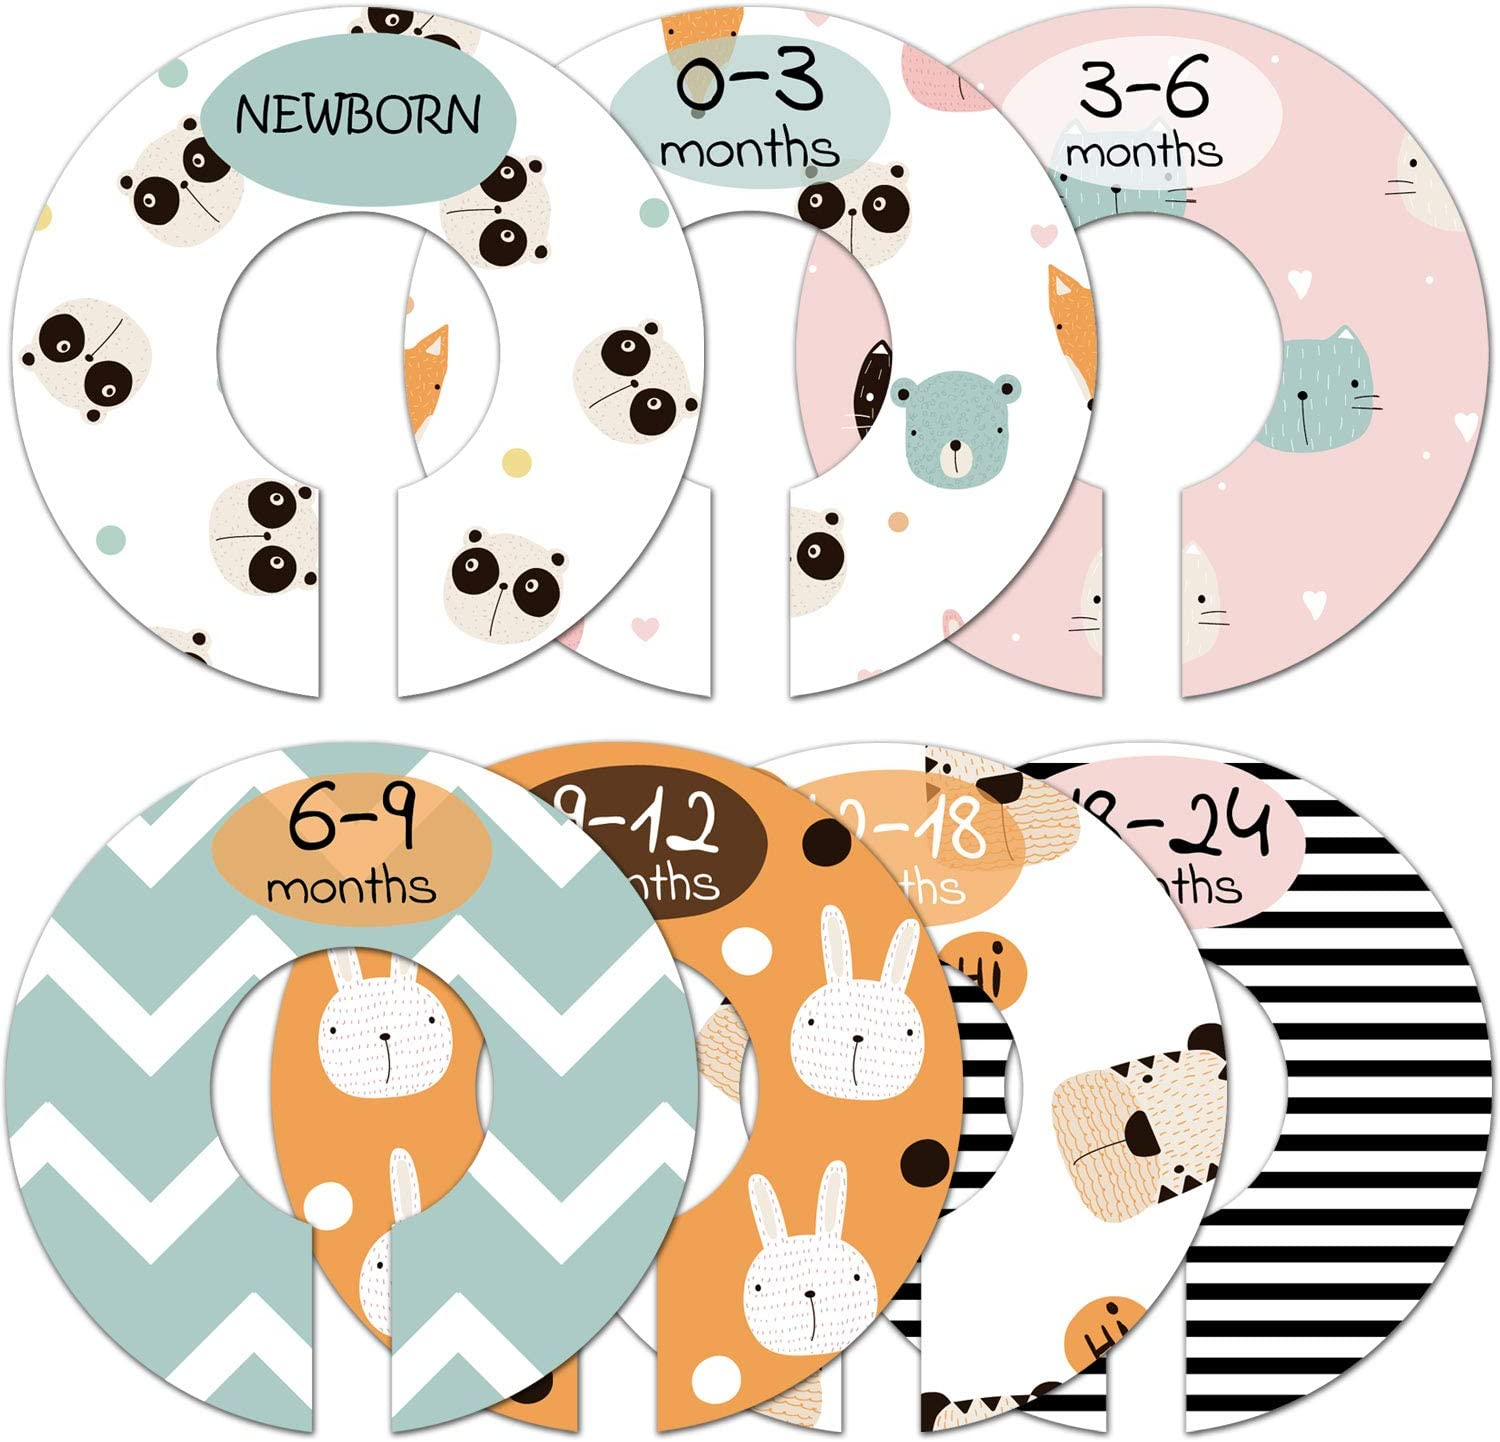 Baby Closet Size Dividers Cute Clothes Organizer Animal 70% OFF Outlet Rare Nursery